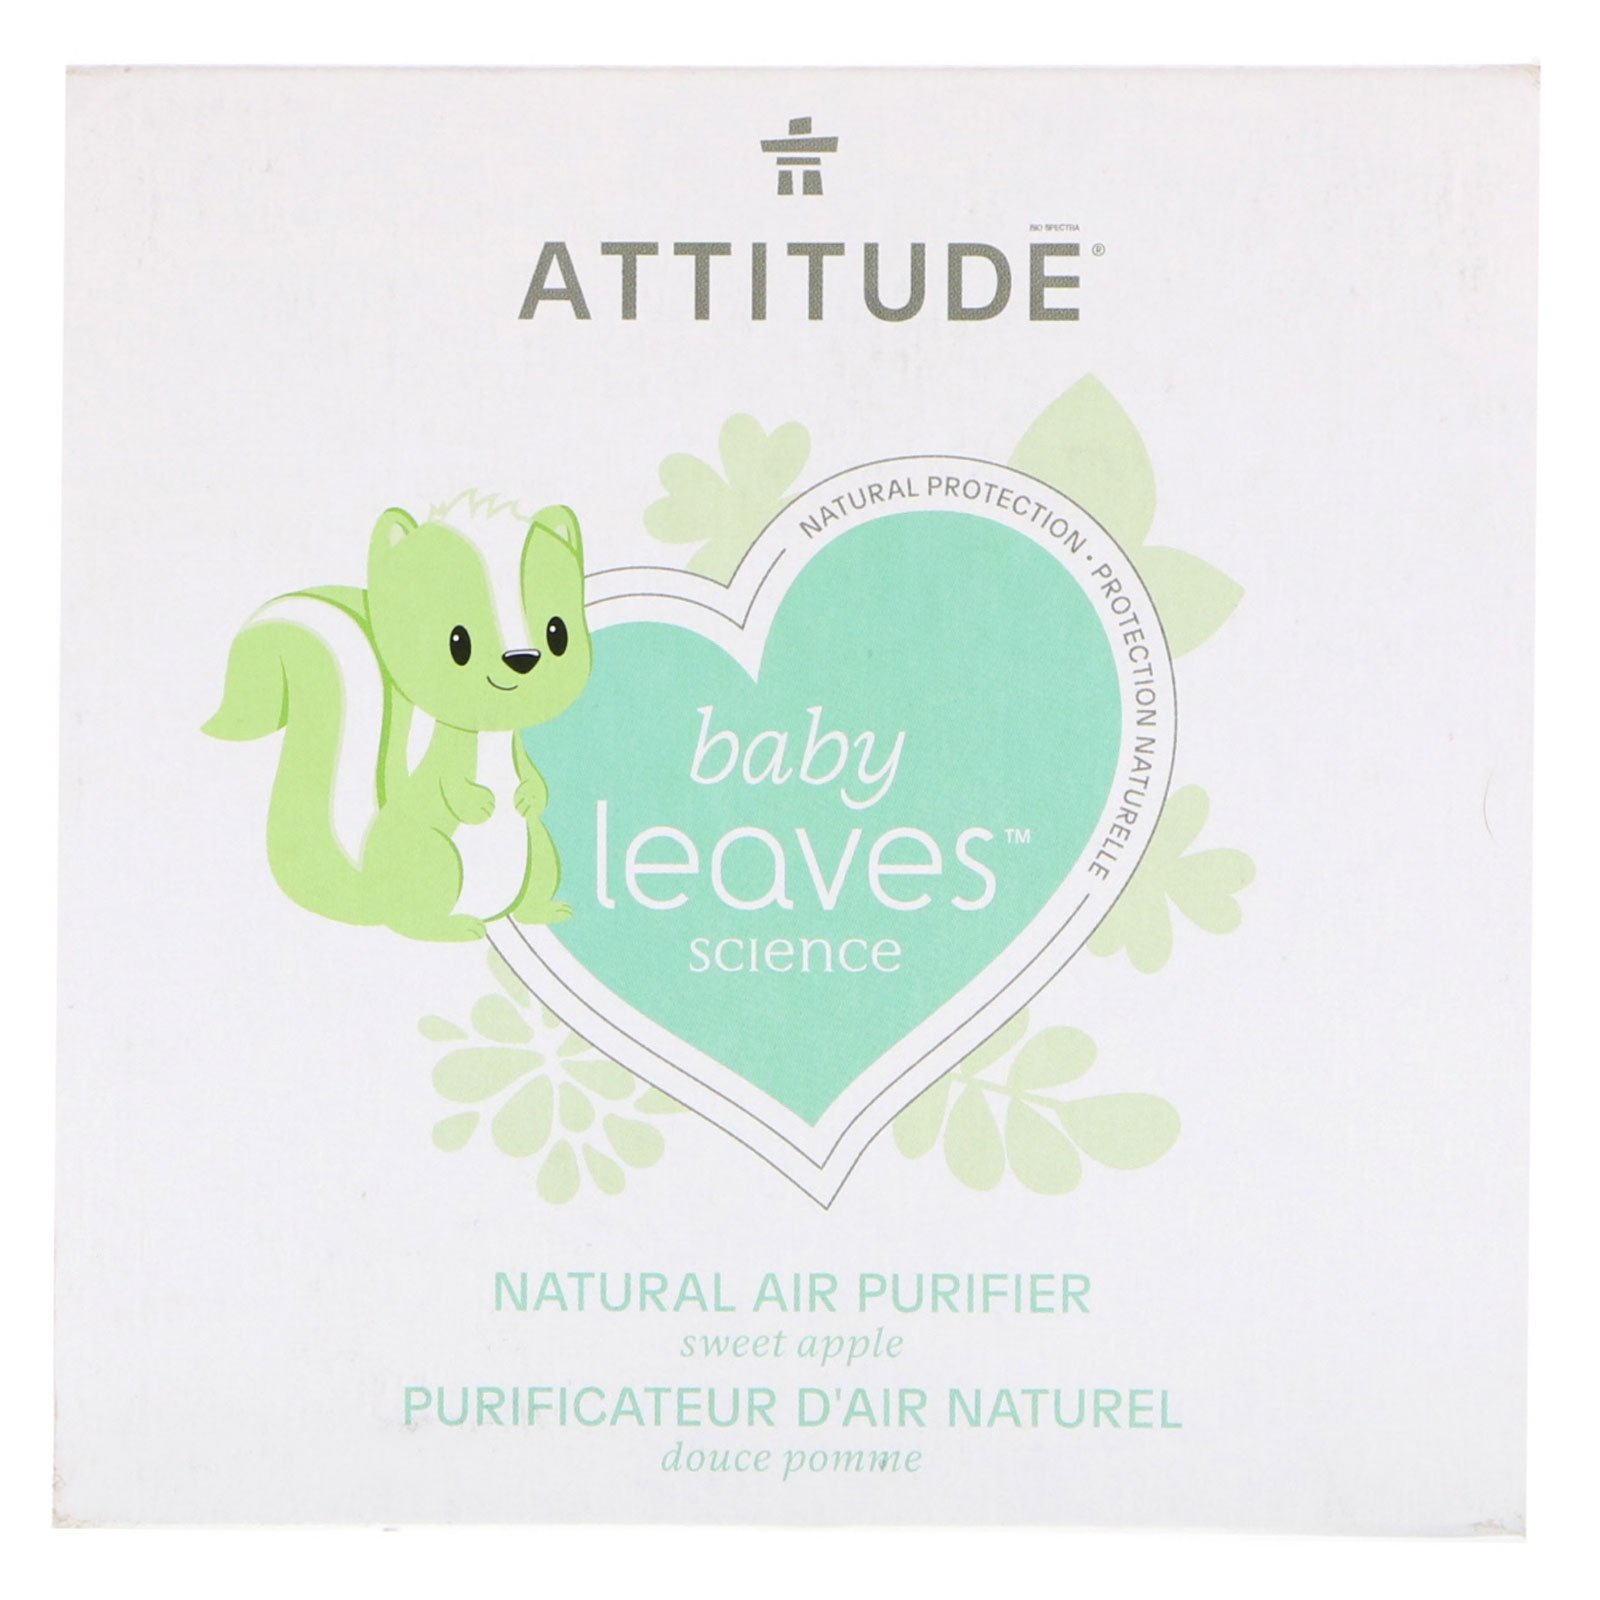 ATTITUDE Natural Air Purifier with Activated Carbon Filter | Traps Air Polluants and Contaminants, Neutralizes Stubborn Odors | Baby Leaves Science Collection | Sweet Apple (8 oz)